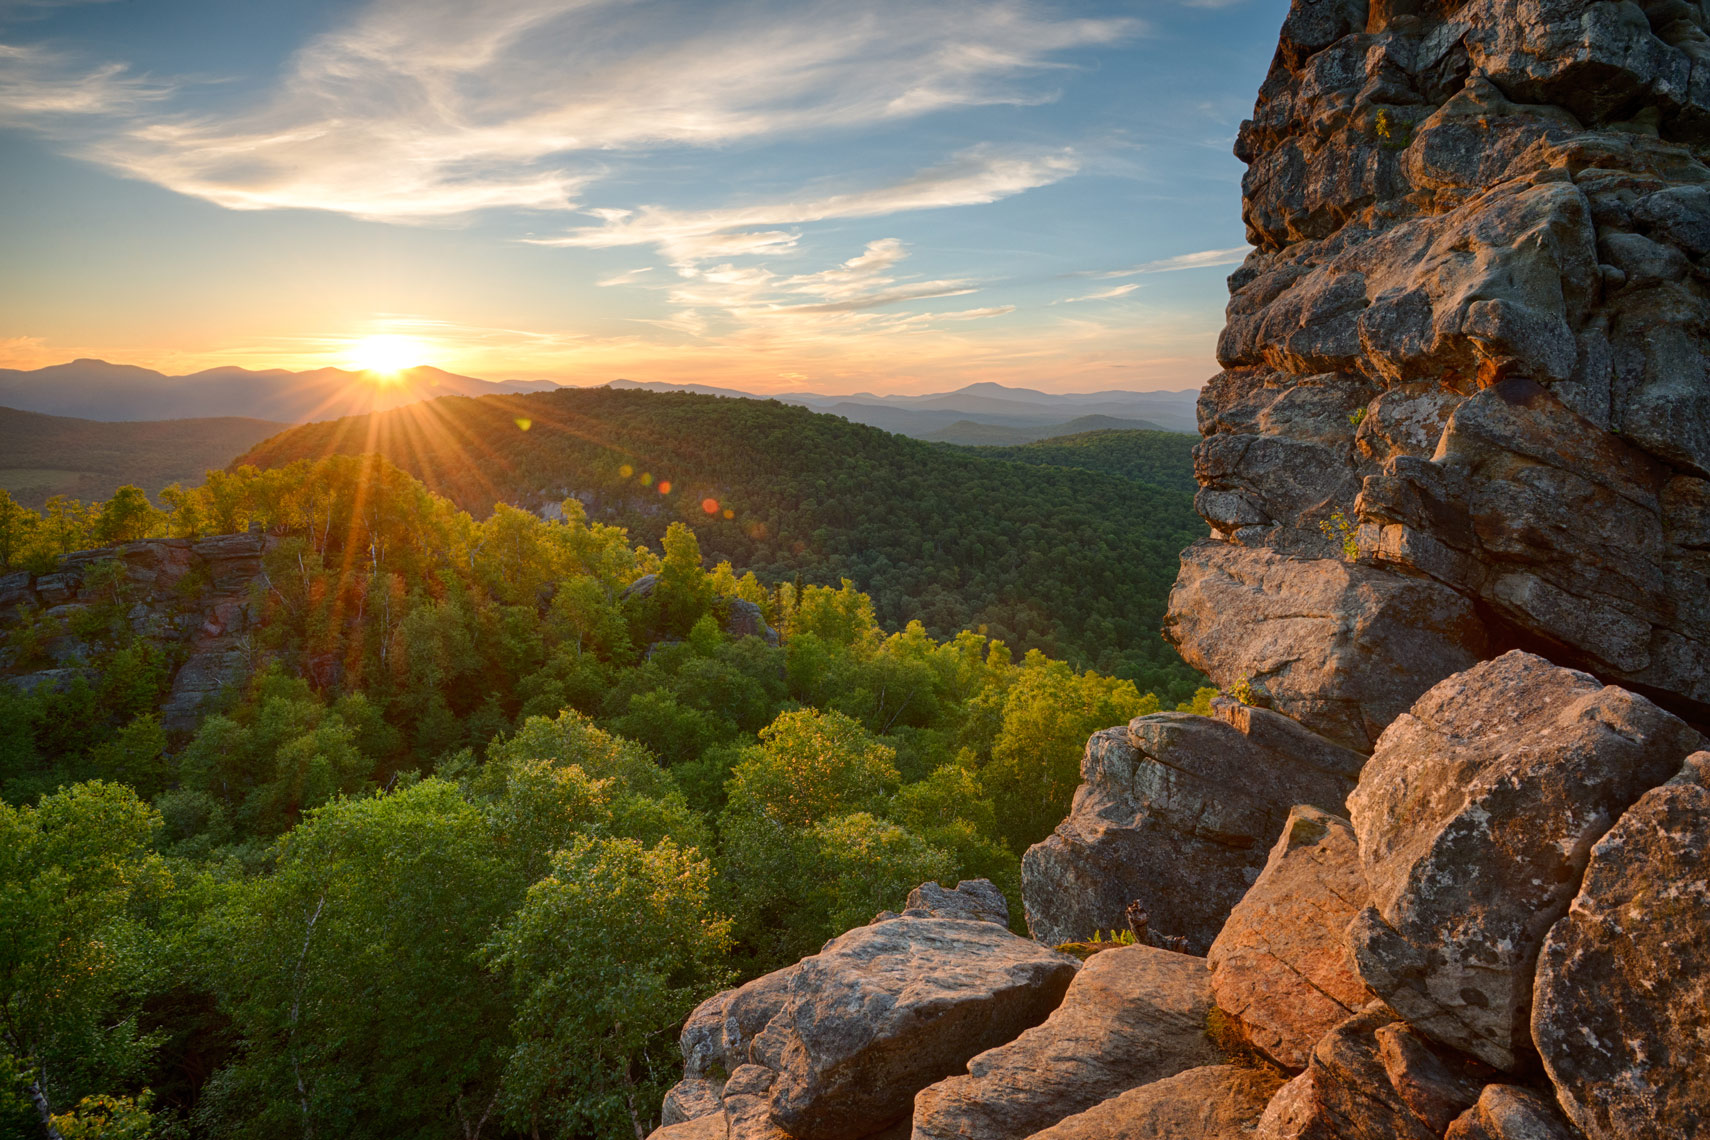 Summer sunset from Chimney Mountain, Adirondack Mountains, New York State